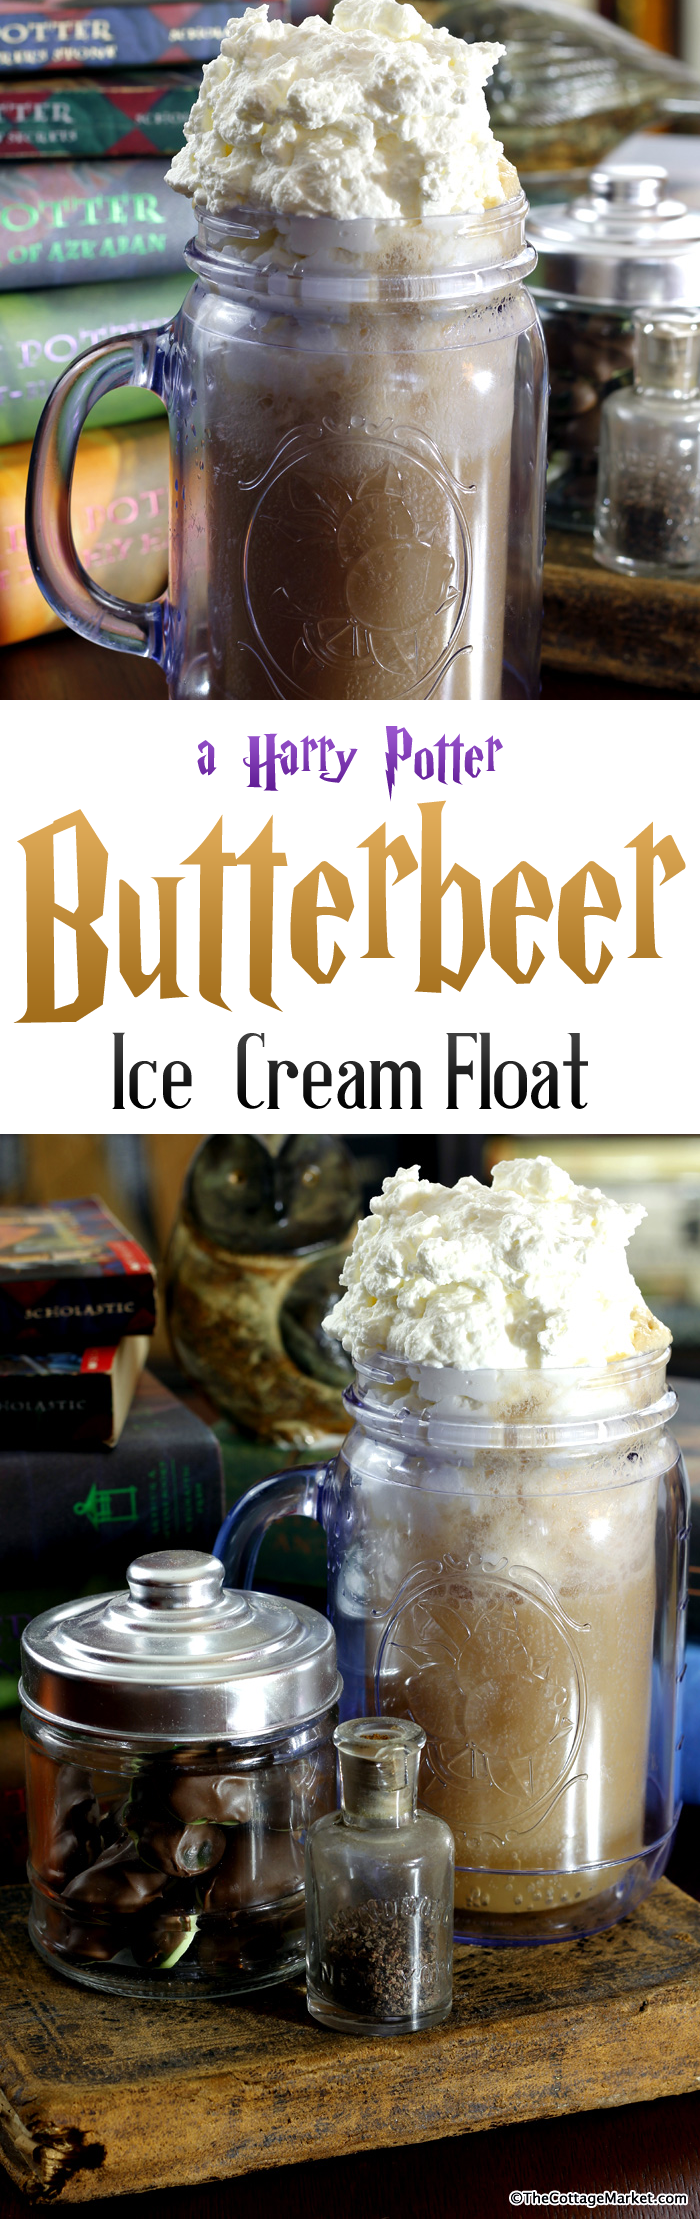 Homemade Harry Potter Butterbeer Ice Cream Float Recipe